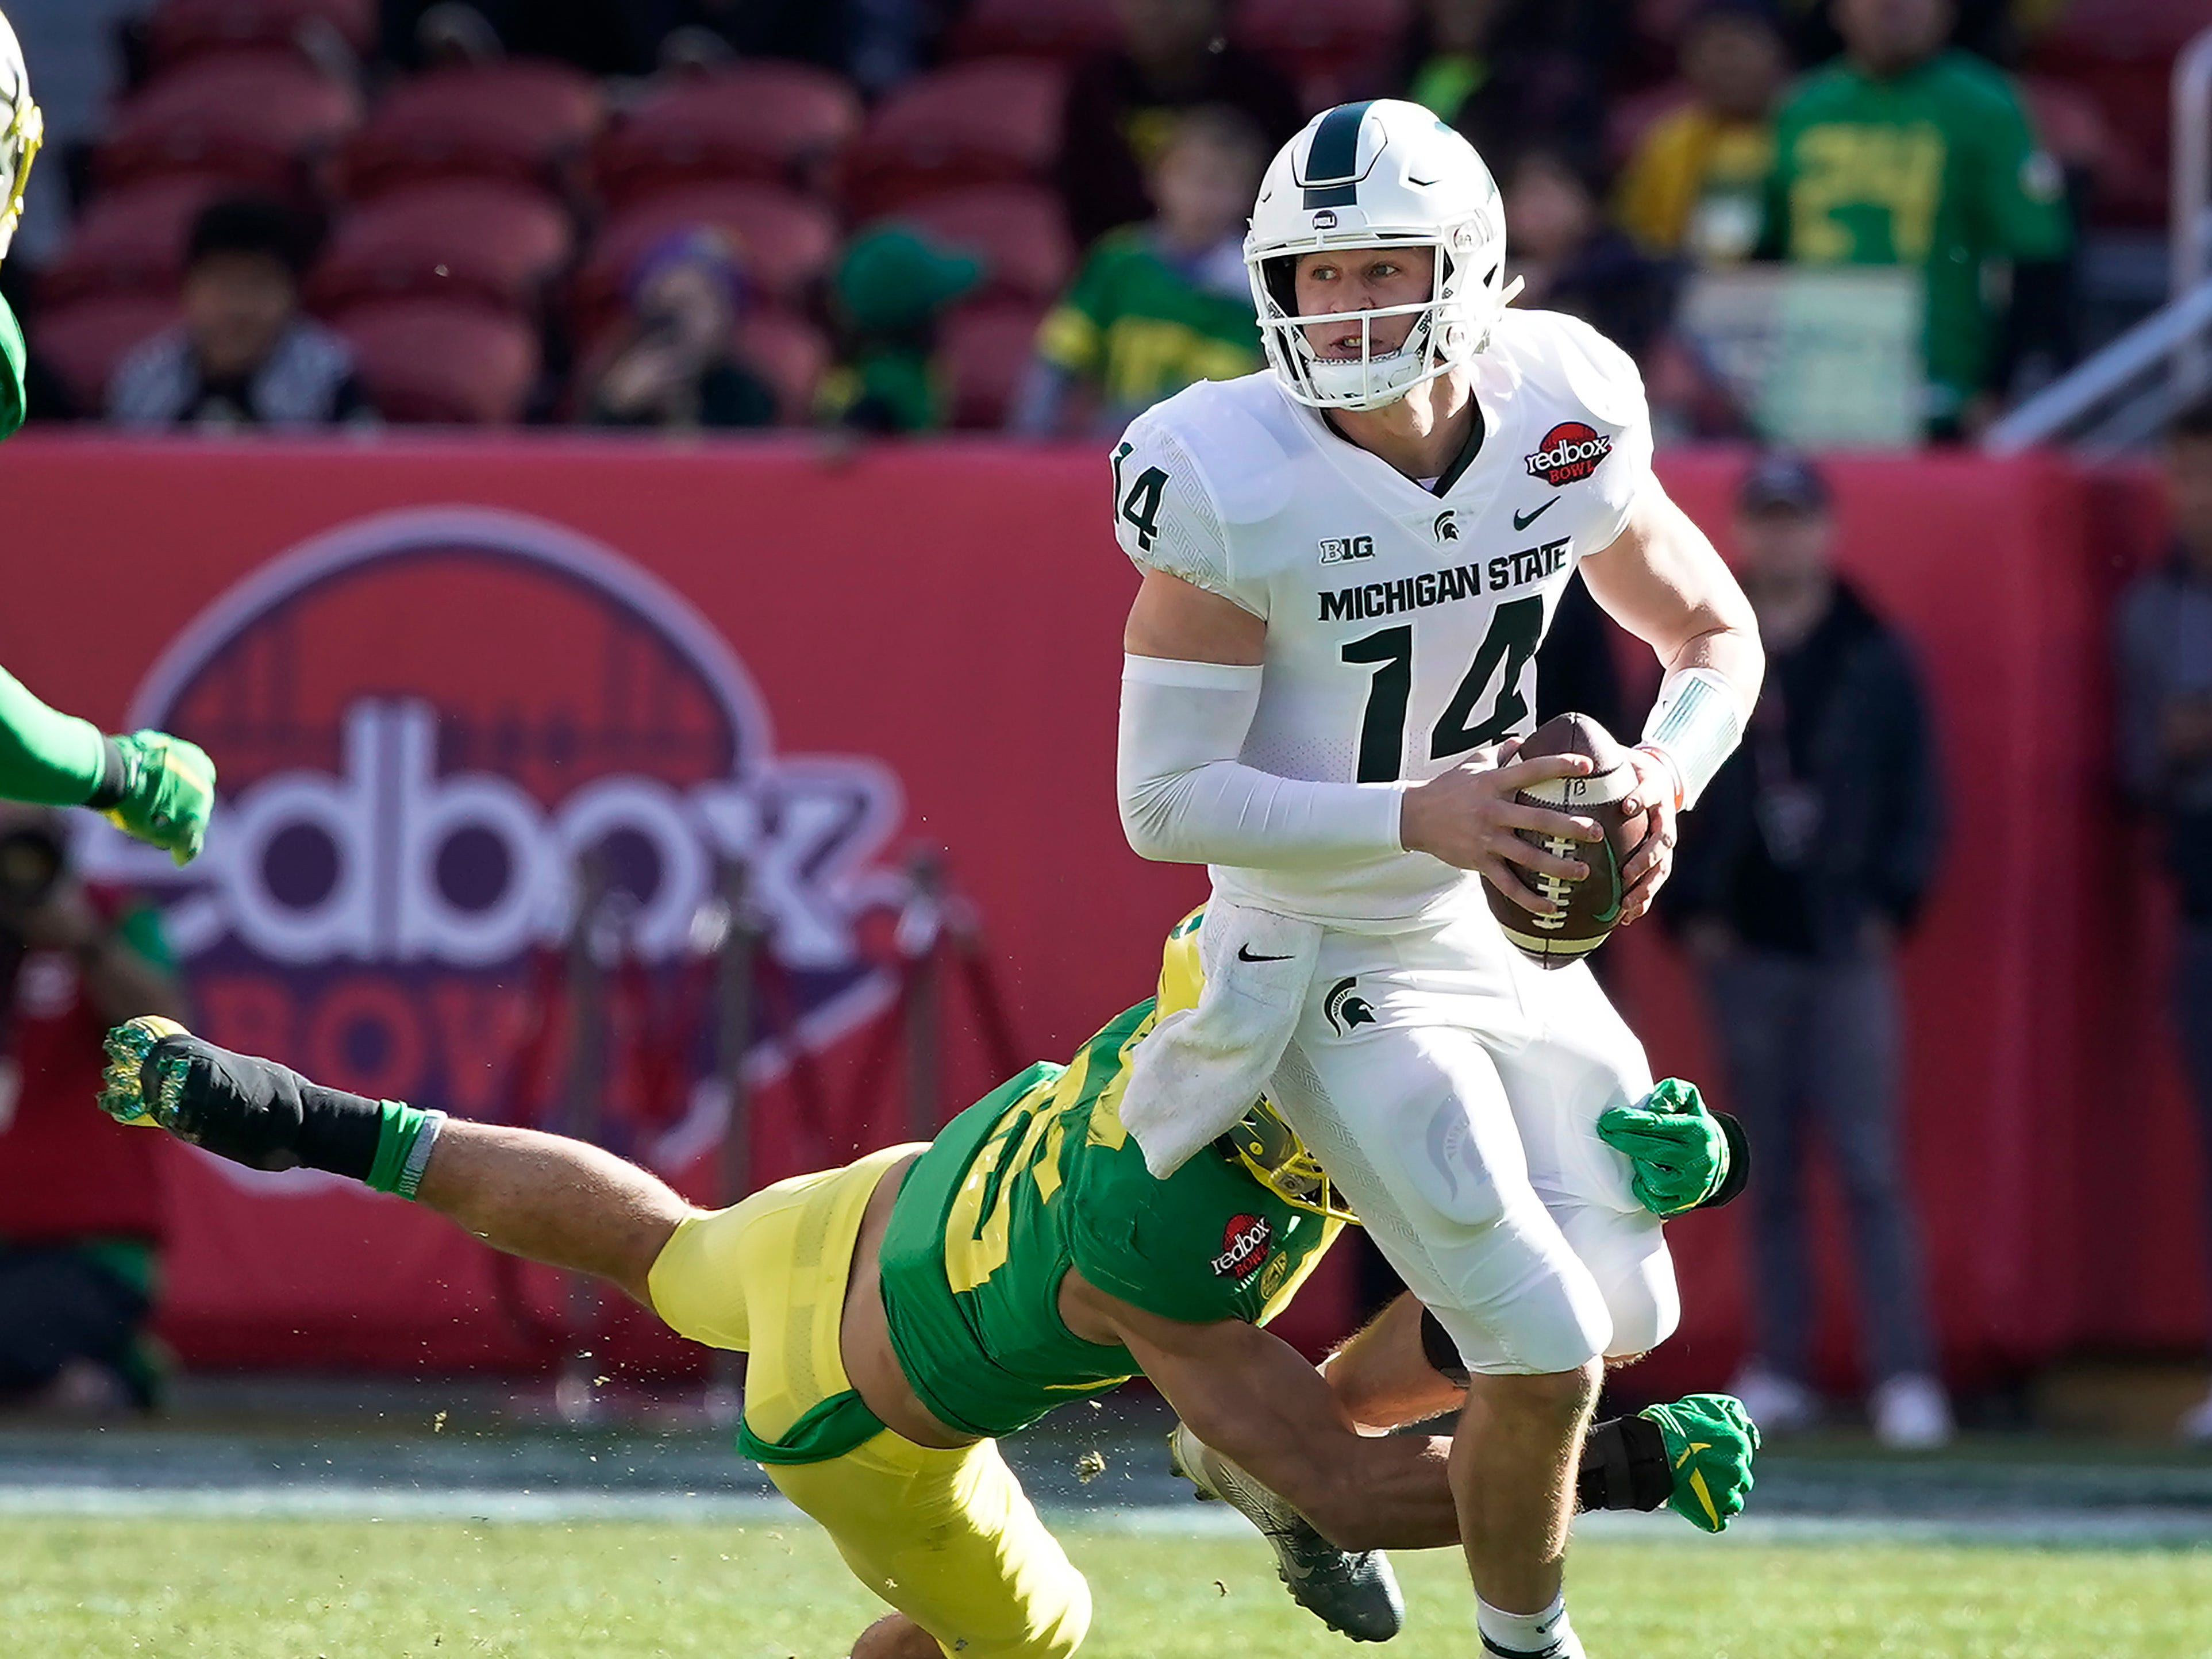 Michigan State quarterback Brian Lewerke (14) is sacked by Oregon safety Brady Breeze (25) during the first half of the Redbox Bowl NCAA college football game Monday, Dec. 31, 2018, in Santa Clara, Calif.